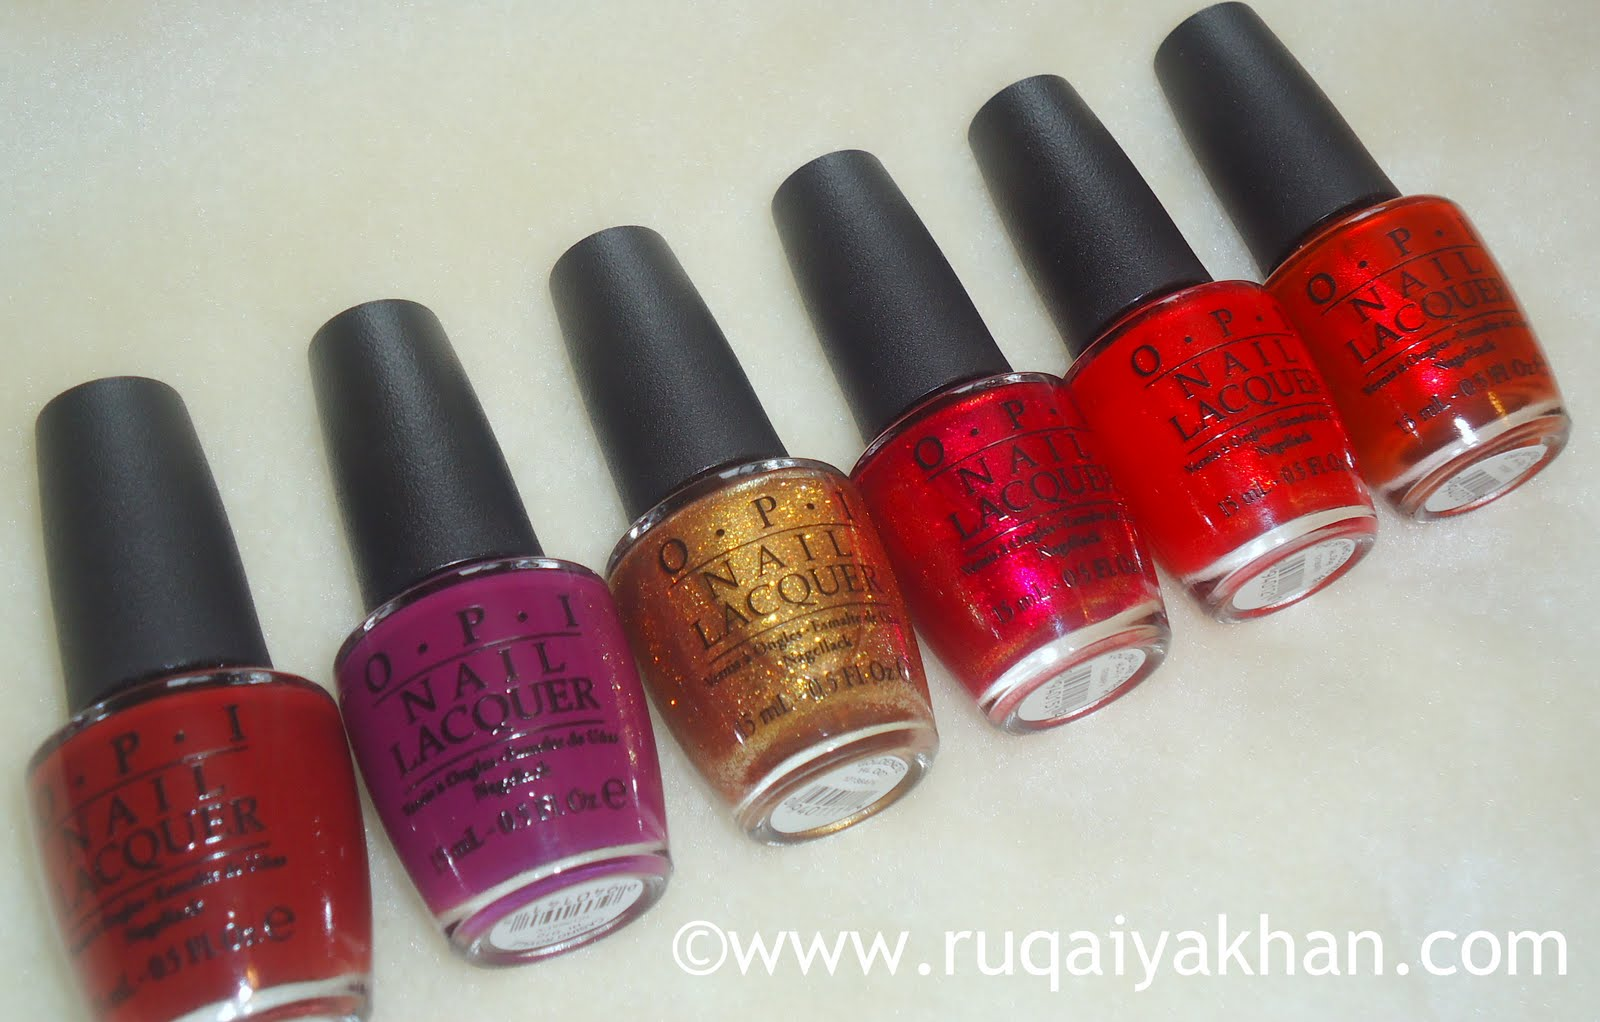 Ruqaiya Khan: OPI Skyfall Collection for Holiday 2012 - Swatches